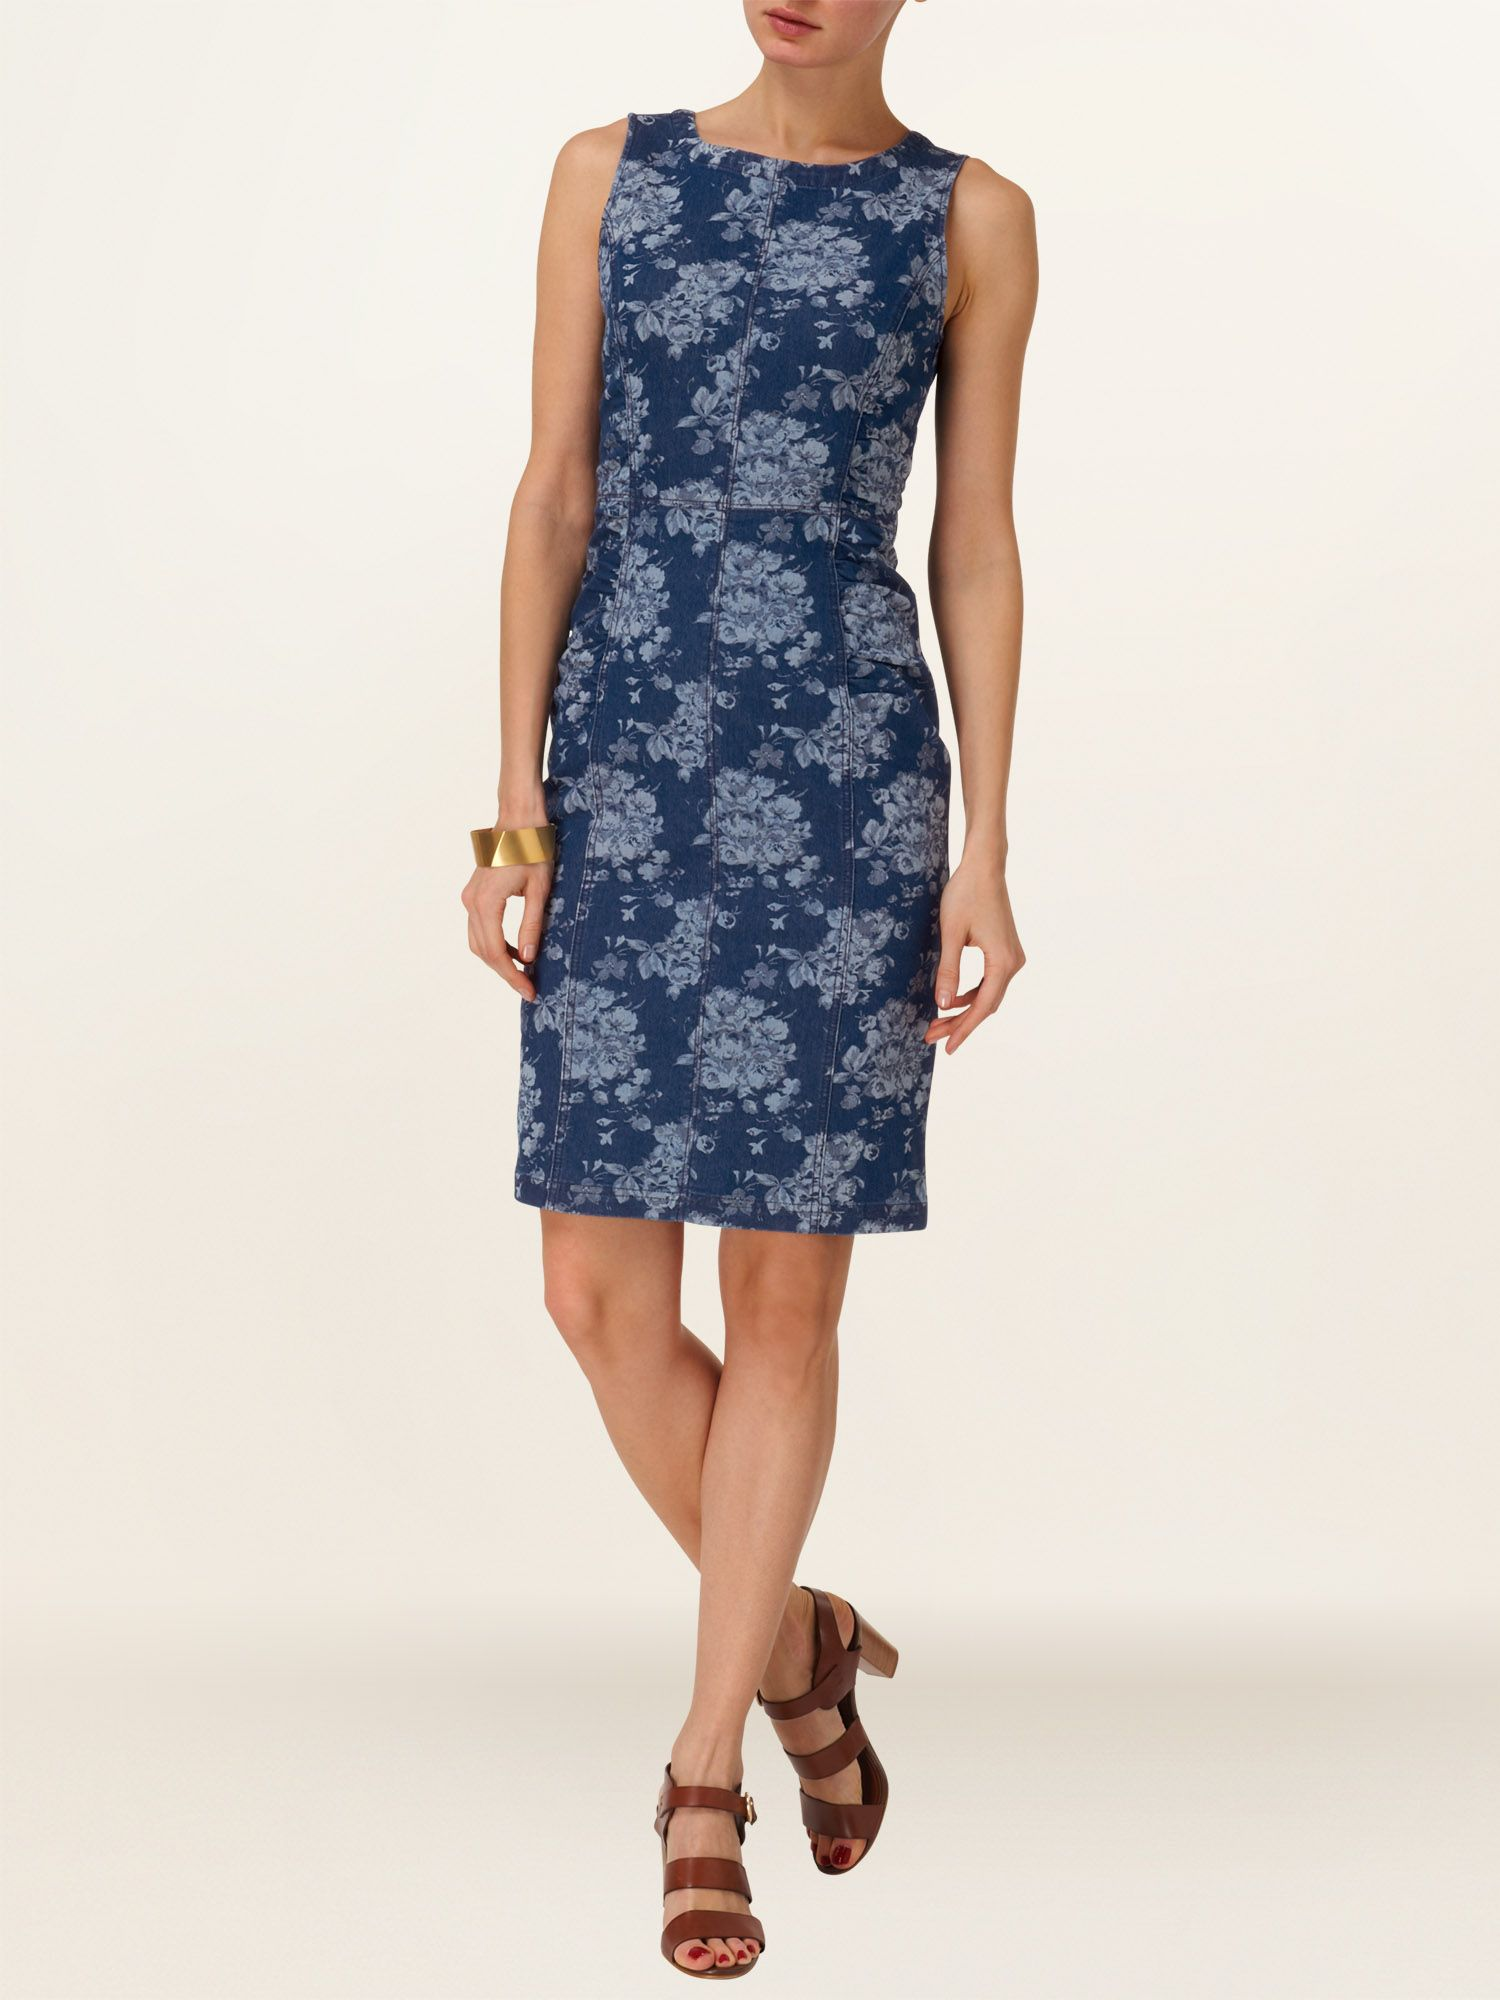 Lola floral denim dress